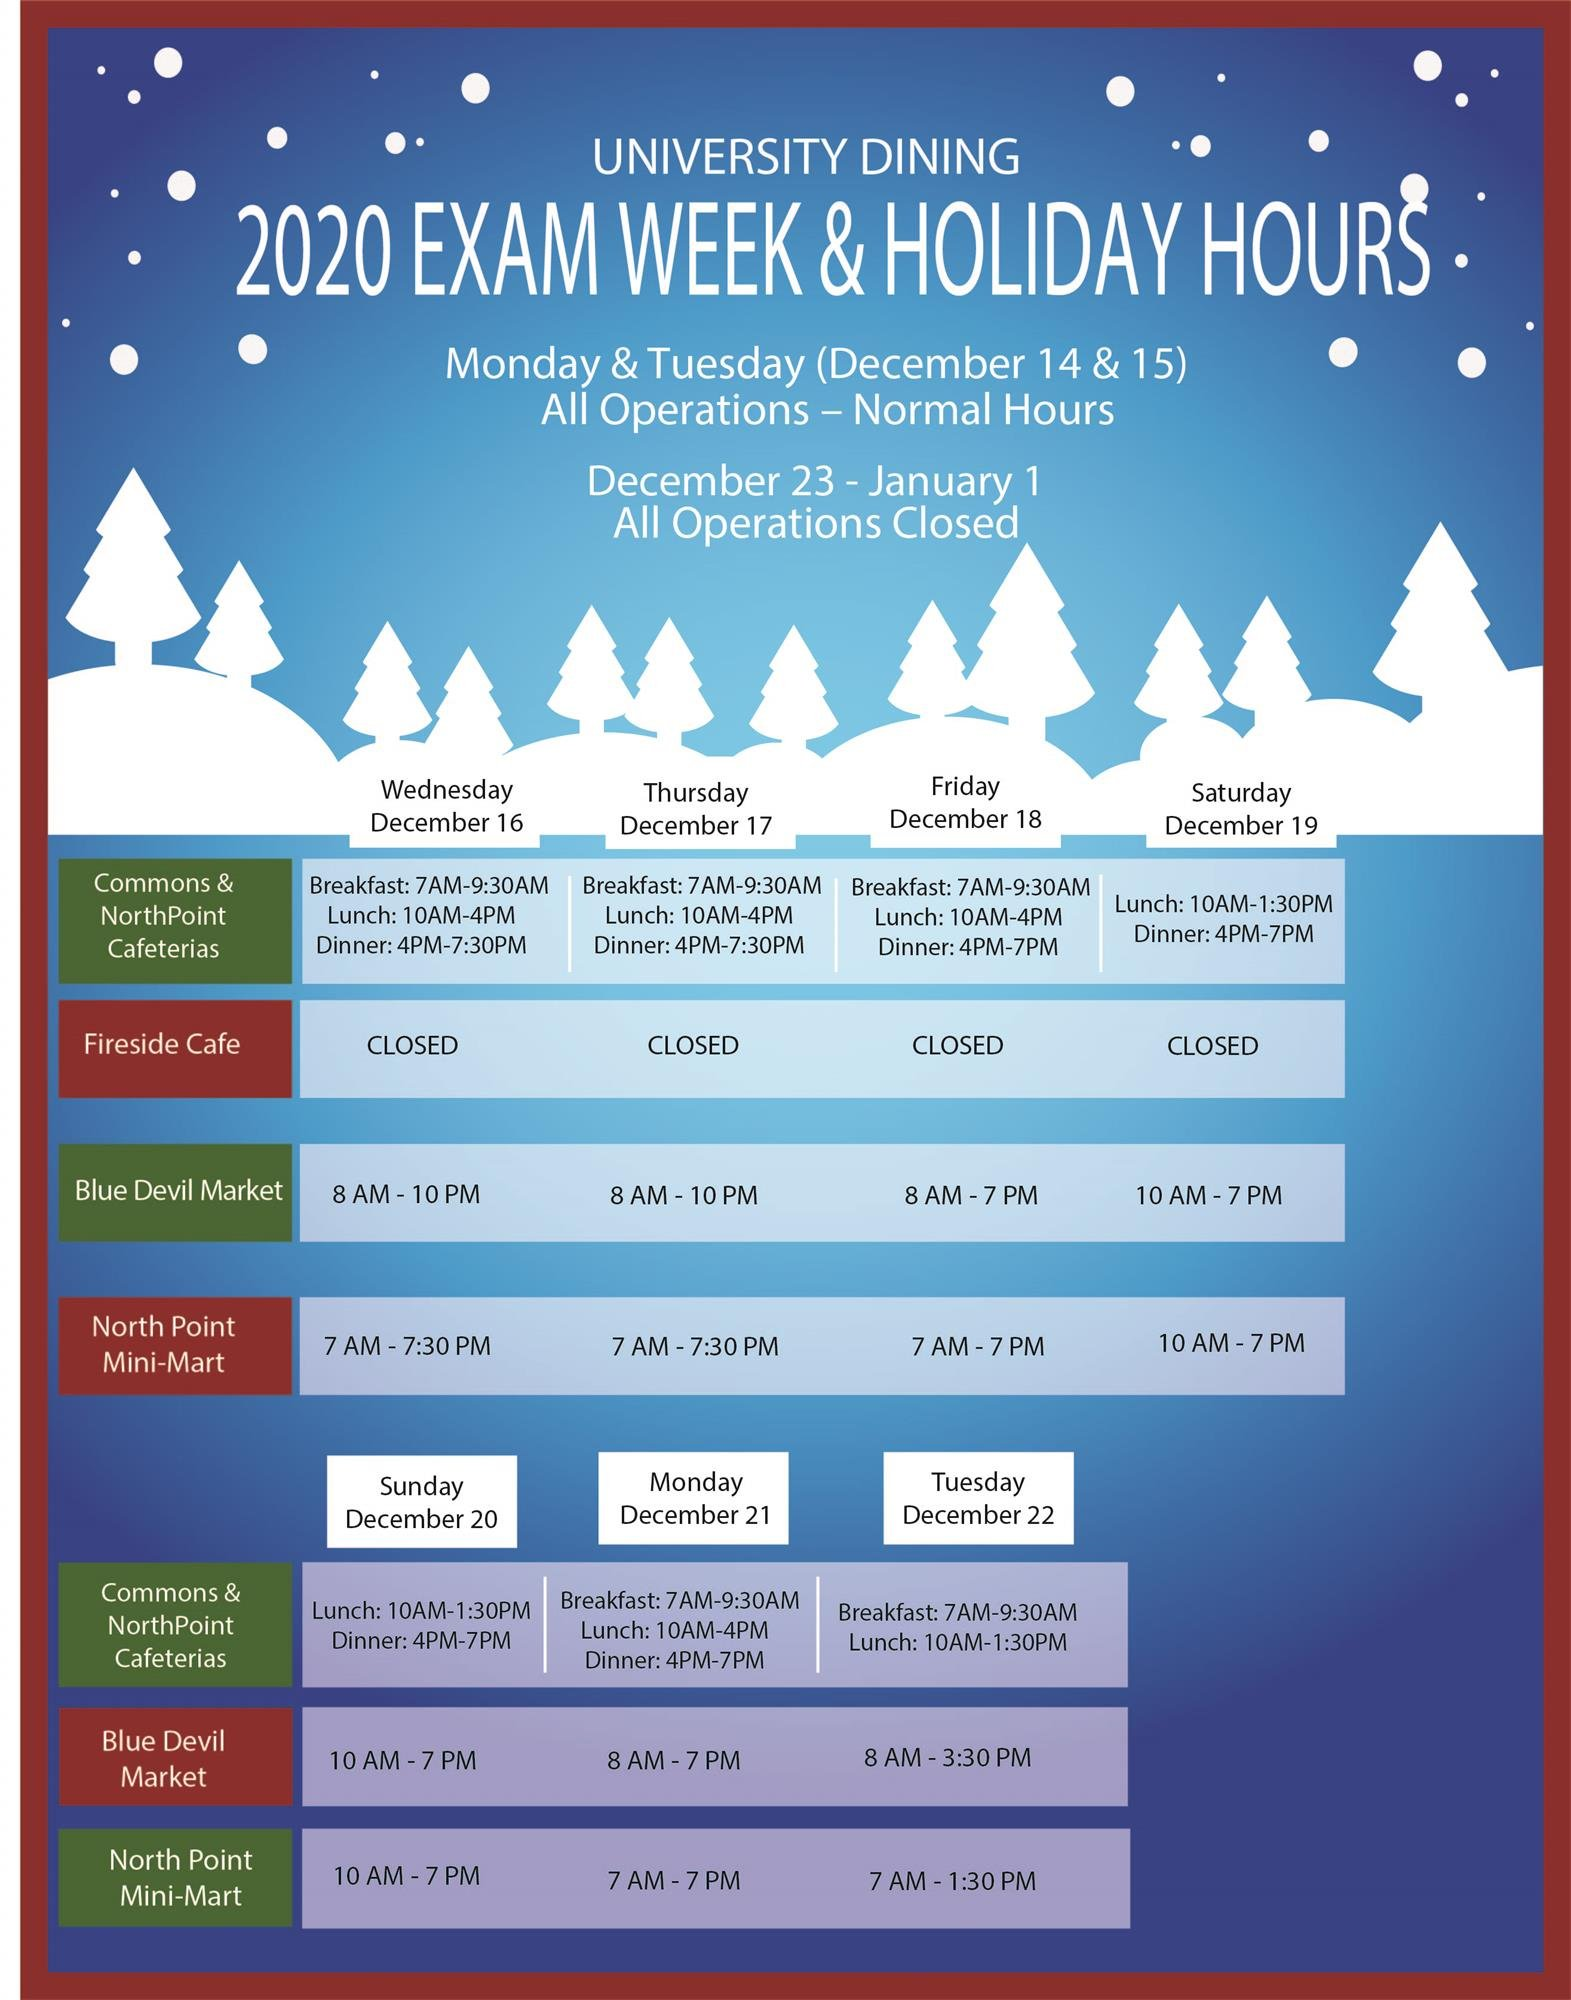 2020 Exam Week & Holiday Hours